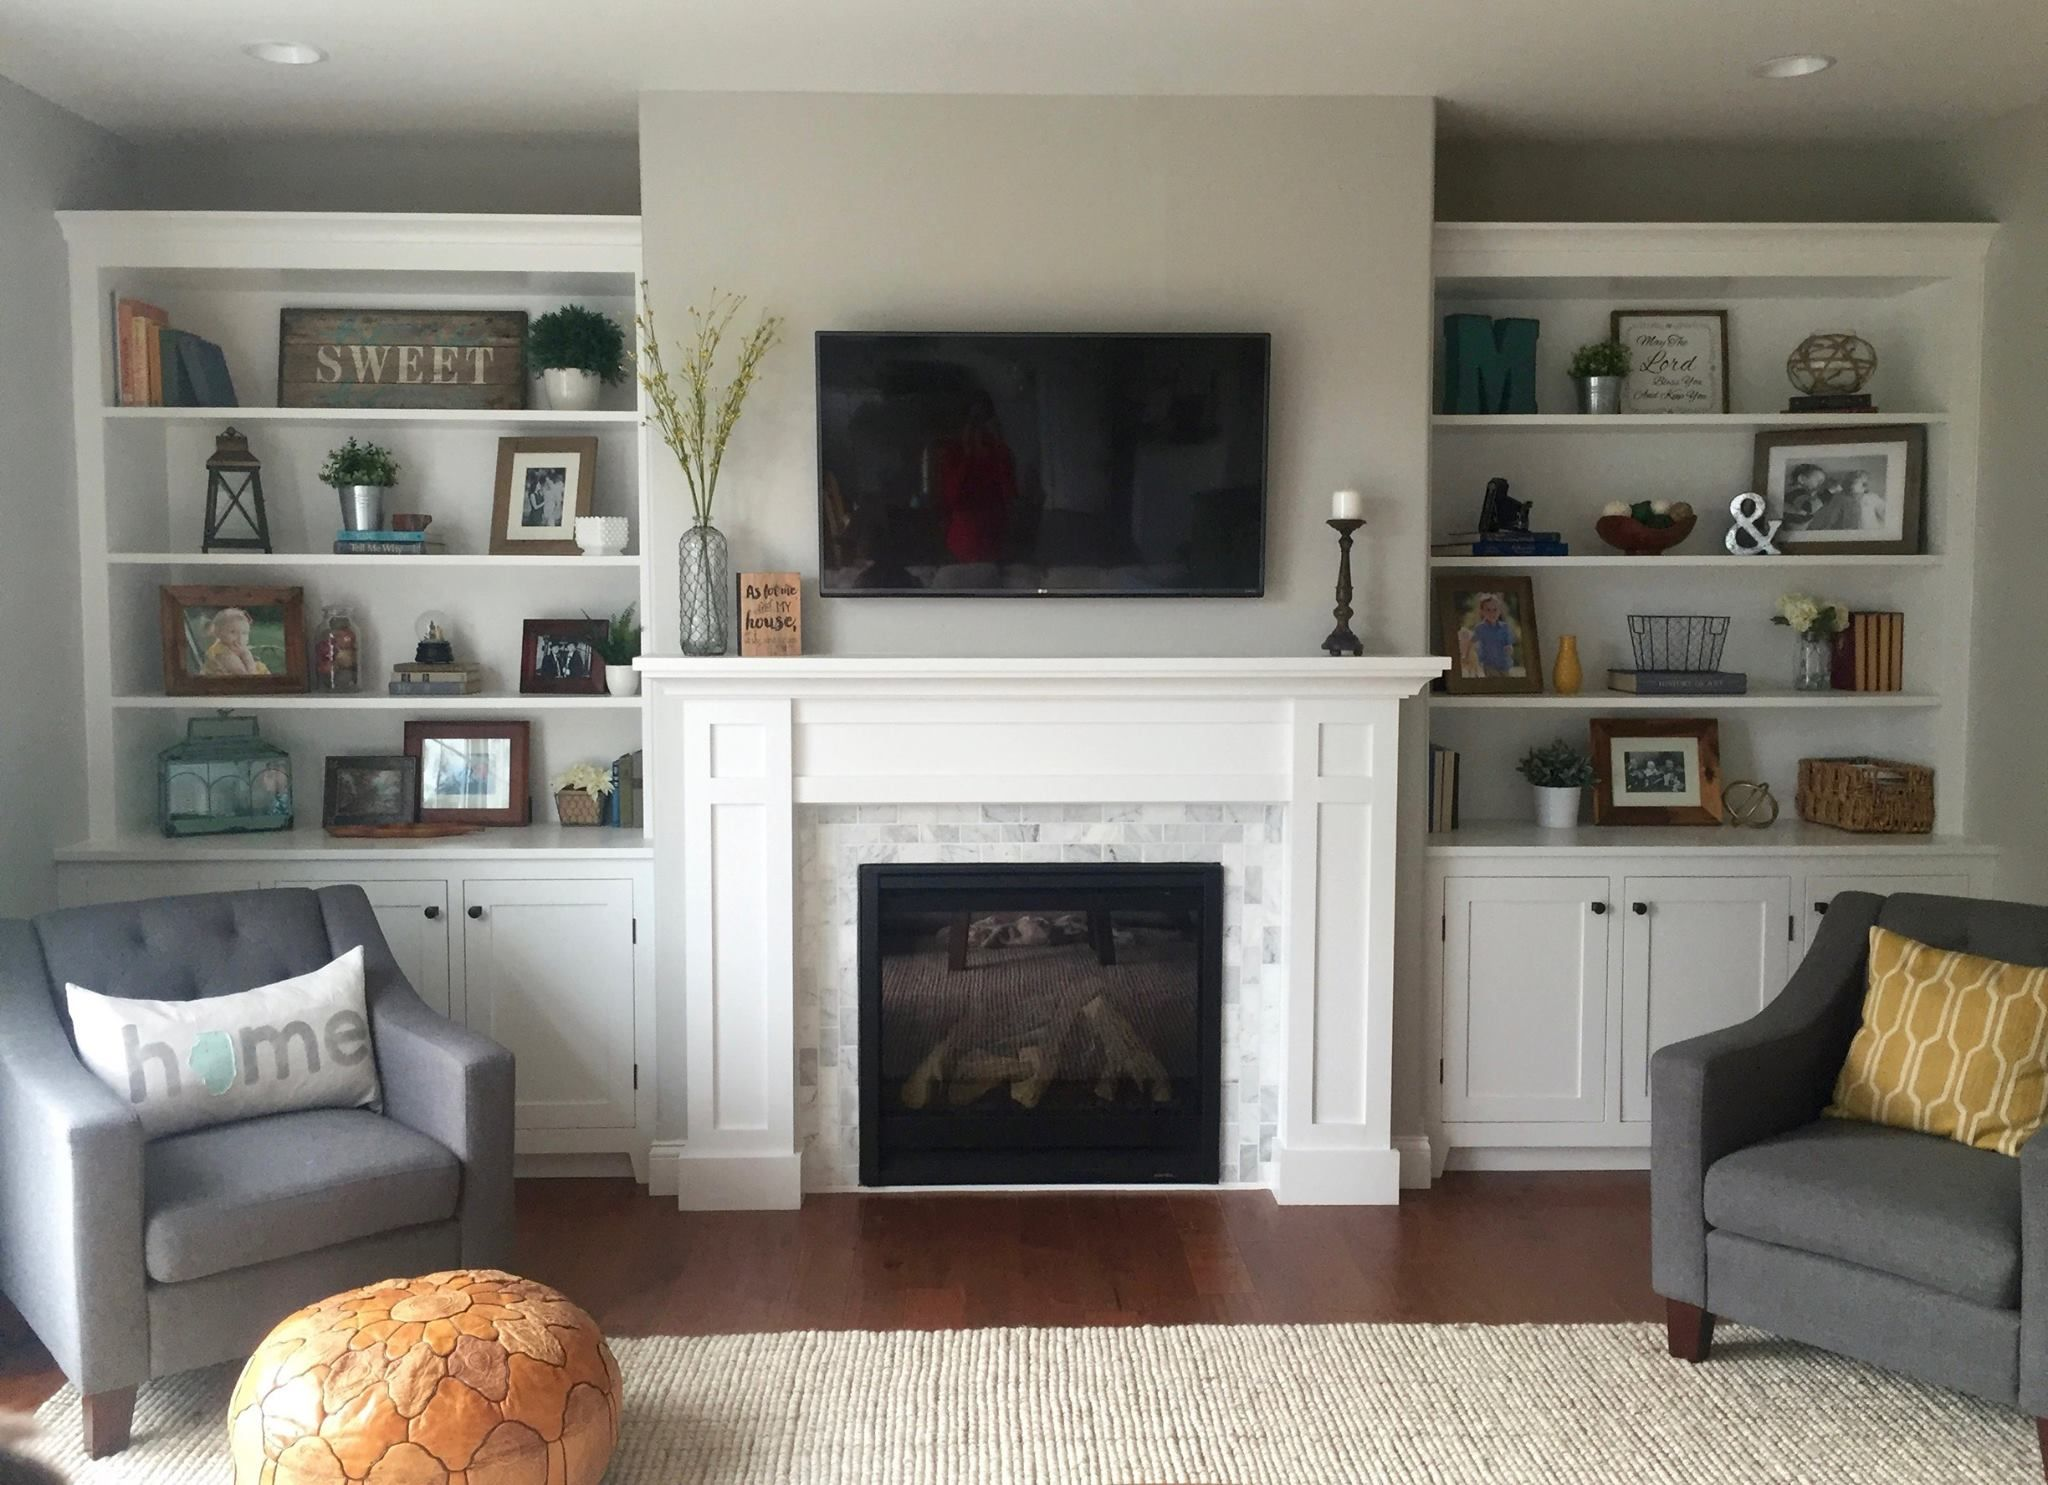 Ferguson Fireplace Luxury How to Build A Built In the Cabinets Woodworking